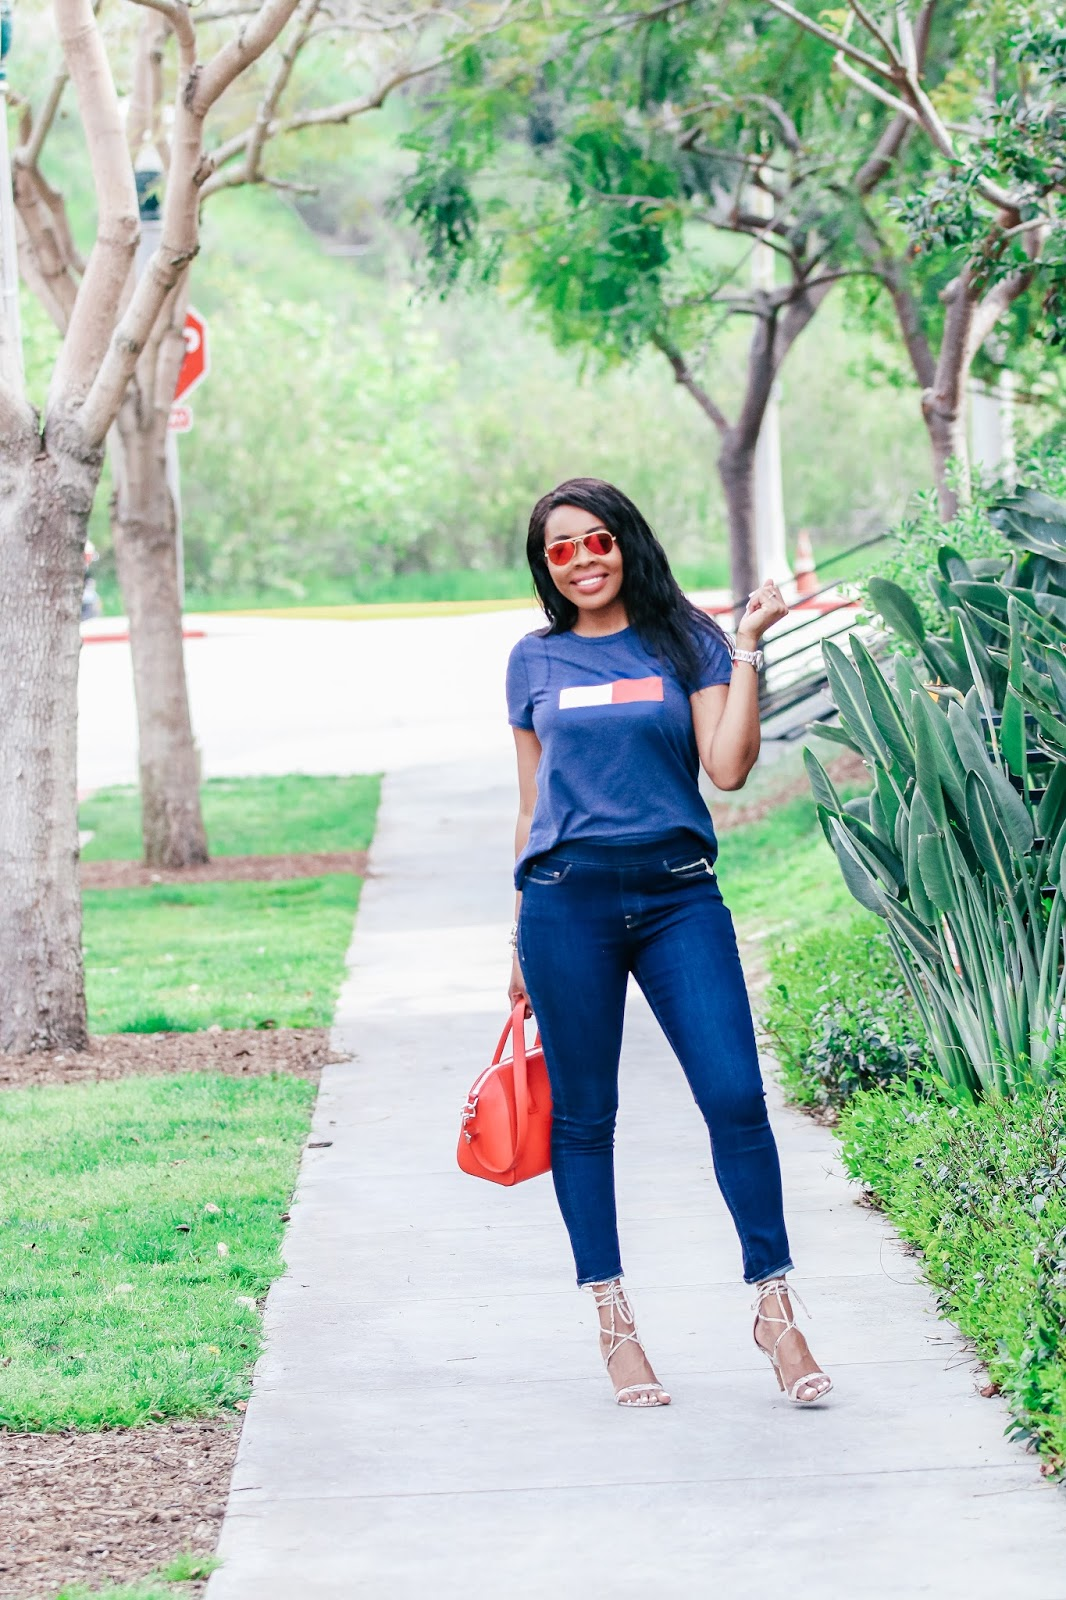 fb843608129 Spring Fashion  How To Style Denim + A T-shirt